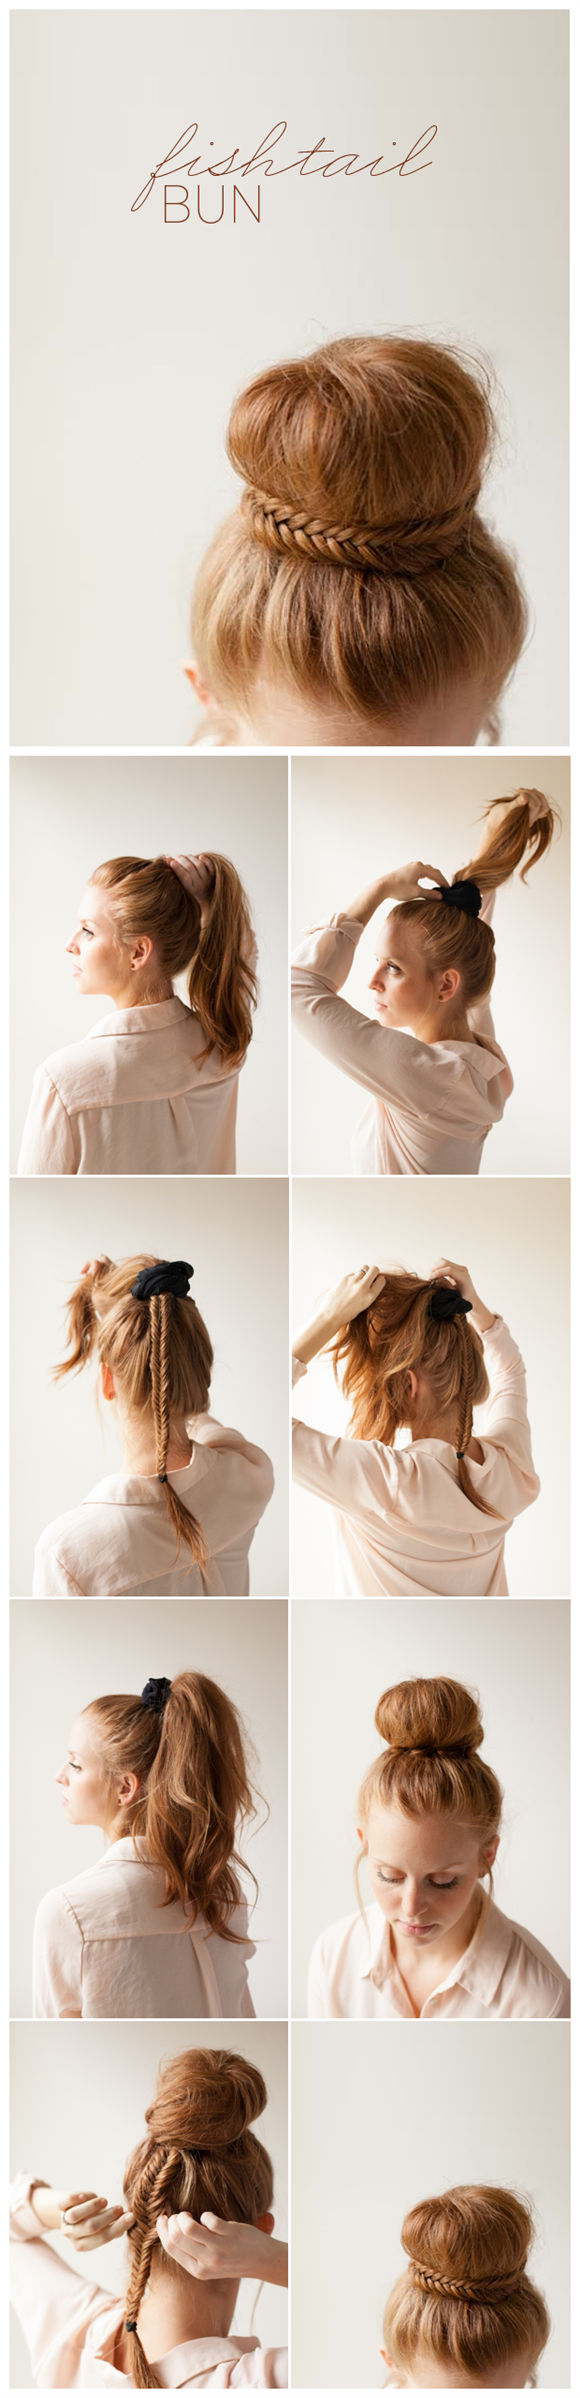 10 Fishtail Bun Tutorial2